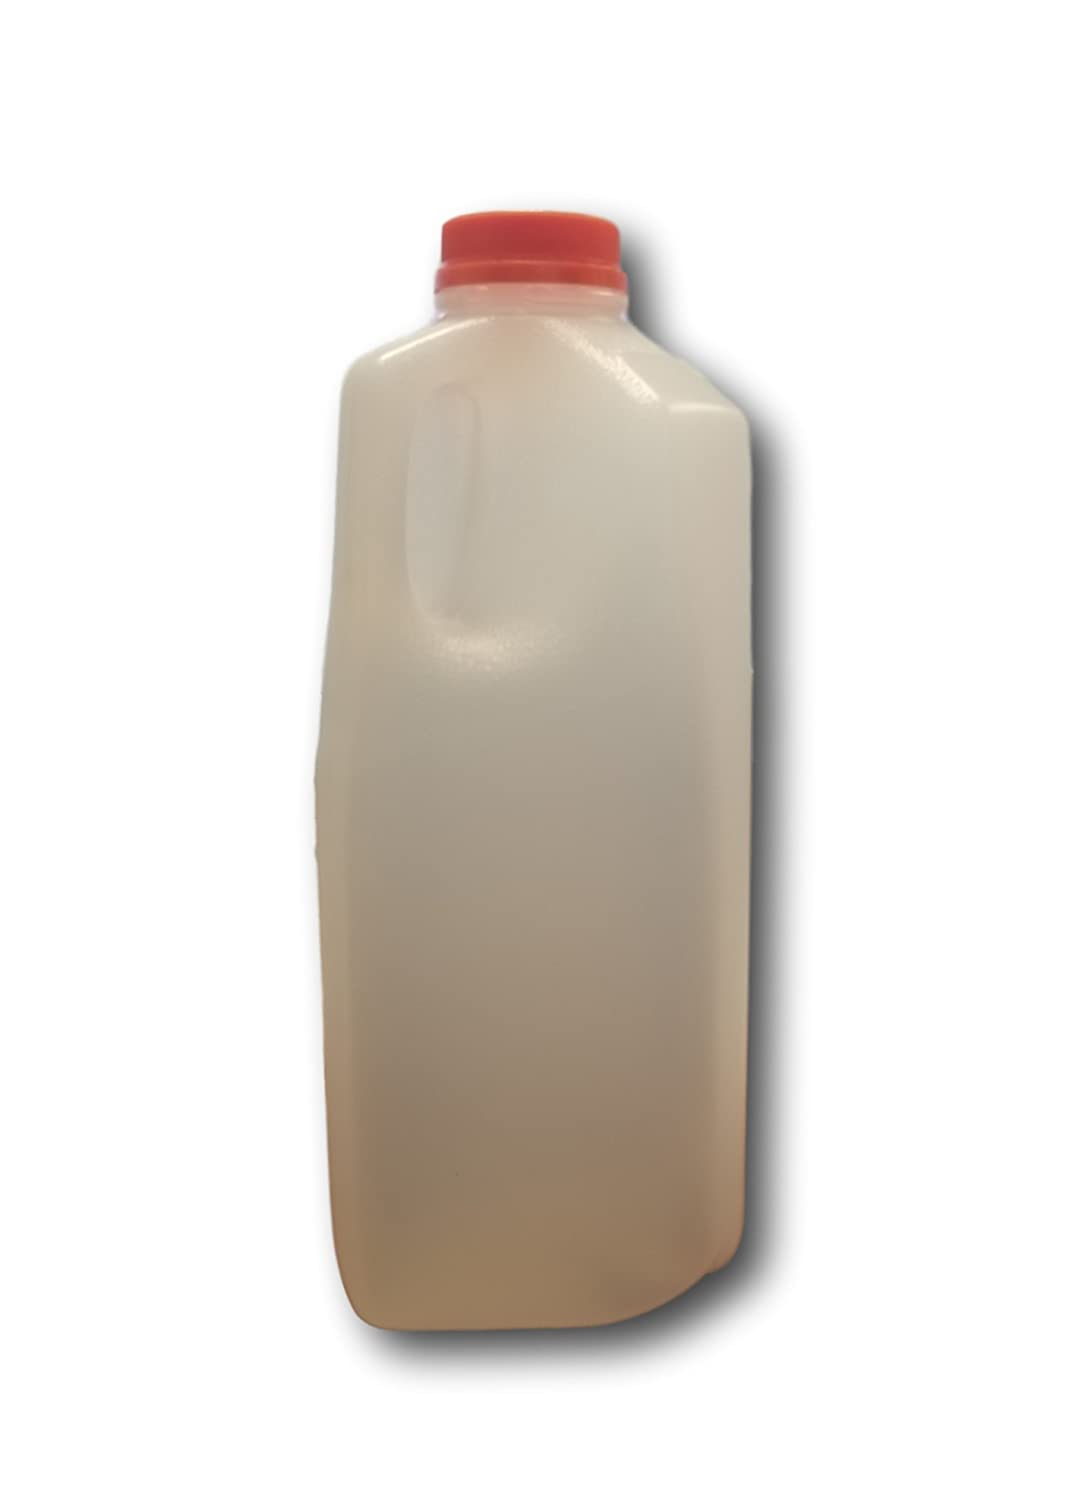 64 Oz. Empty HDPE Plastic Juice / Milk Bottles with Tamper Evident Caps by AM Bottle Supply- Set of 6 Bottles and 6 Caps